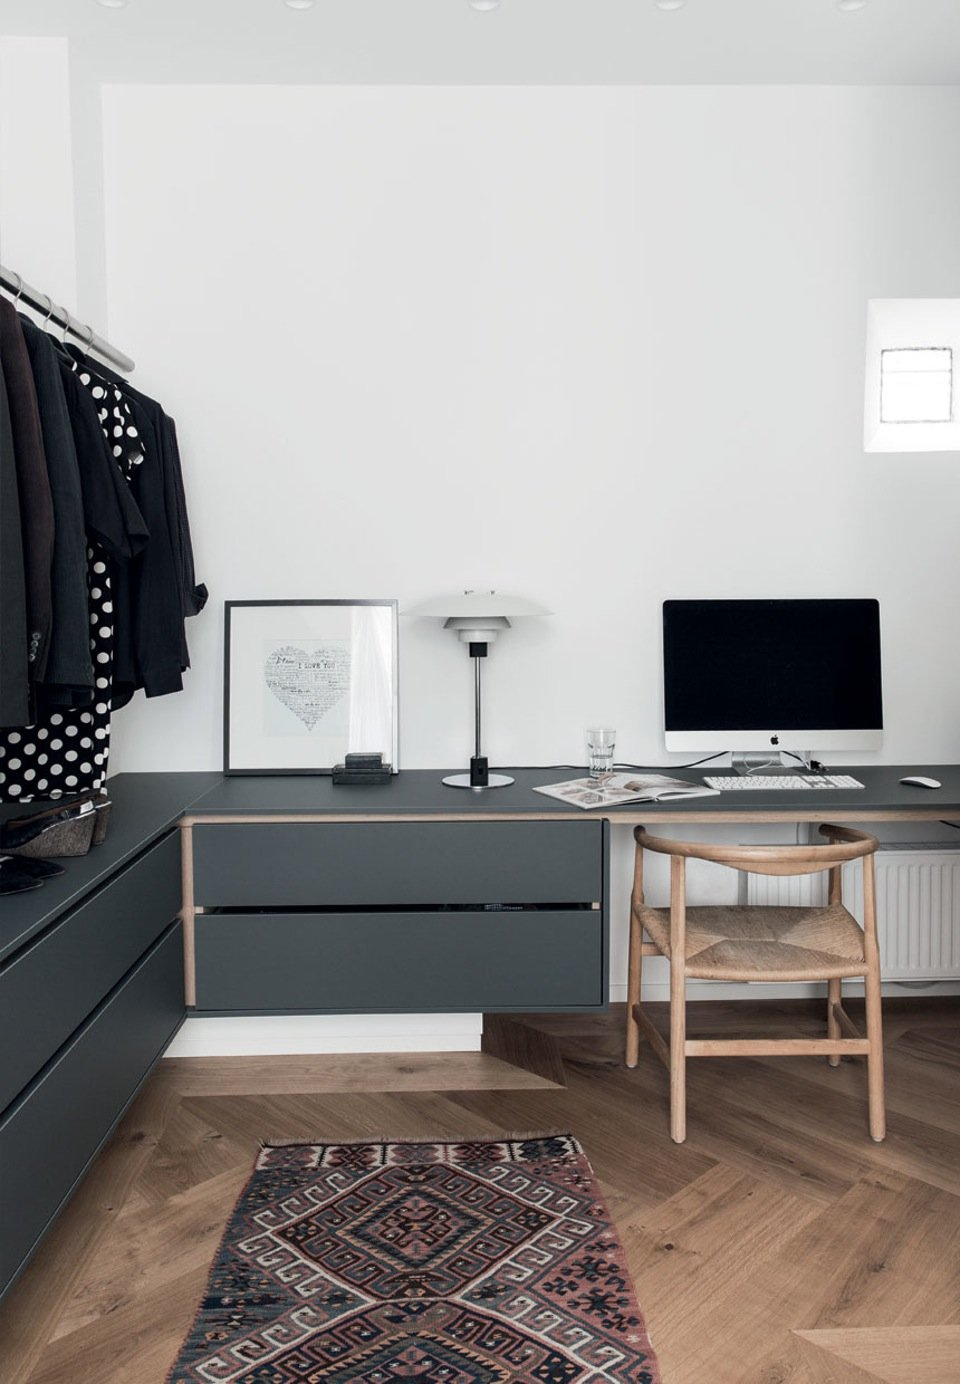 The couple's walk-in closet which is also the office. A bright PP201 Hans Wegner chair is used as office chair, and PH 4/3 lamp by Poul Henningsen tables and drawers in made of linoleum, which lends to a soft subdued look.